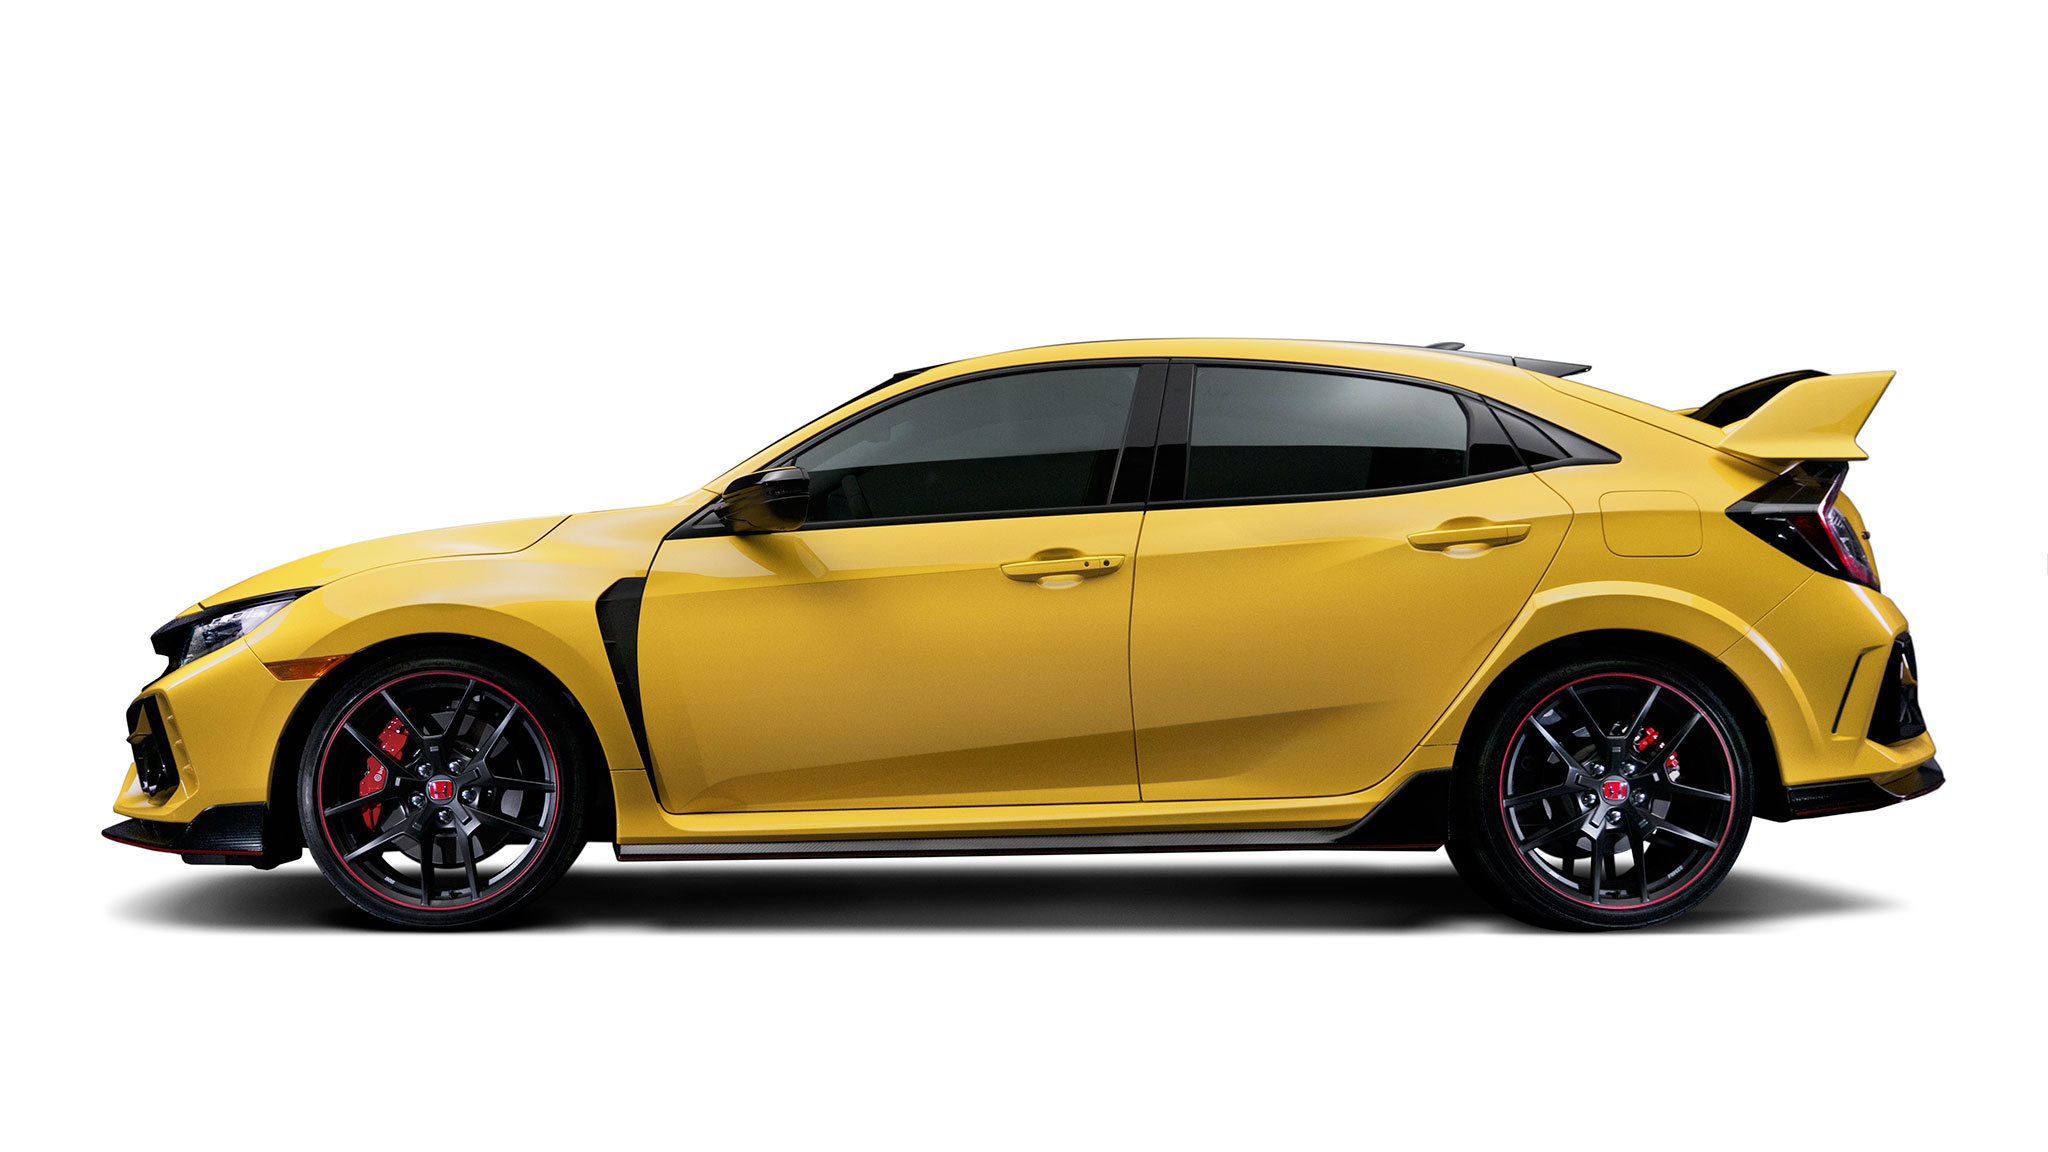 2021 Honda Civic Type R Limited Edition Lighter Yellow And Re Tuned